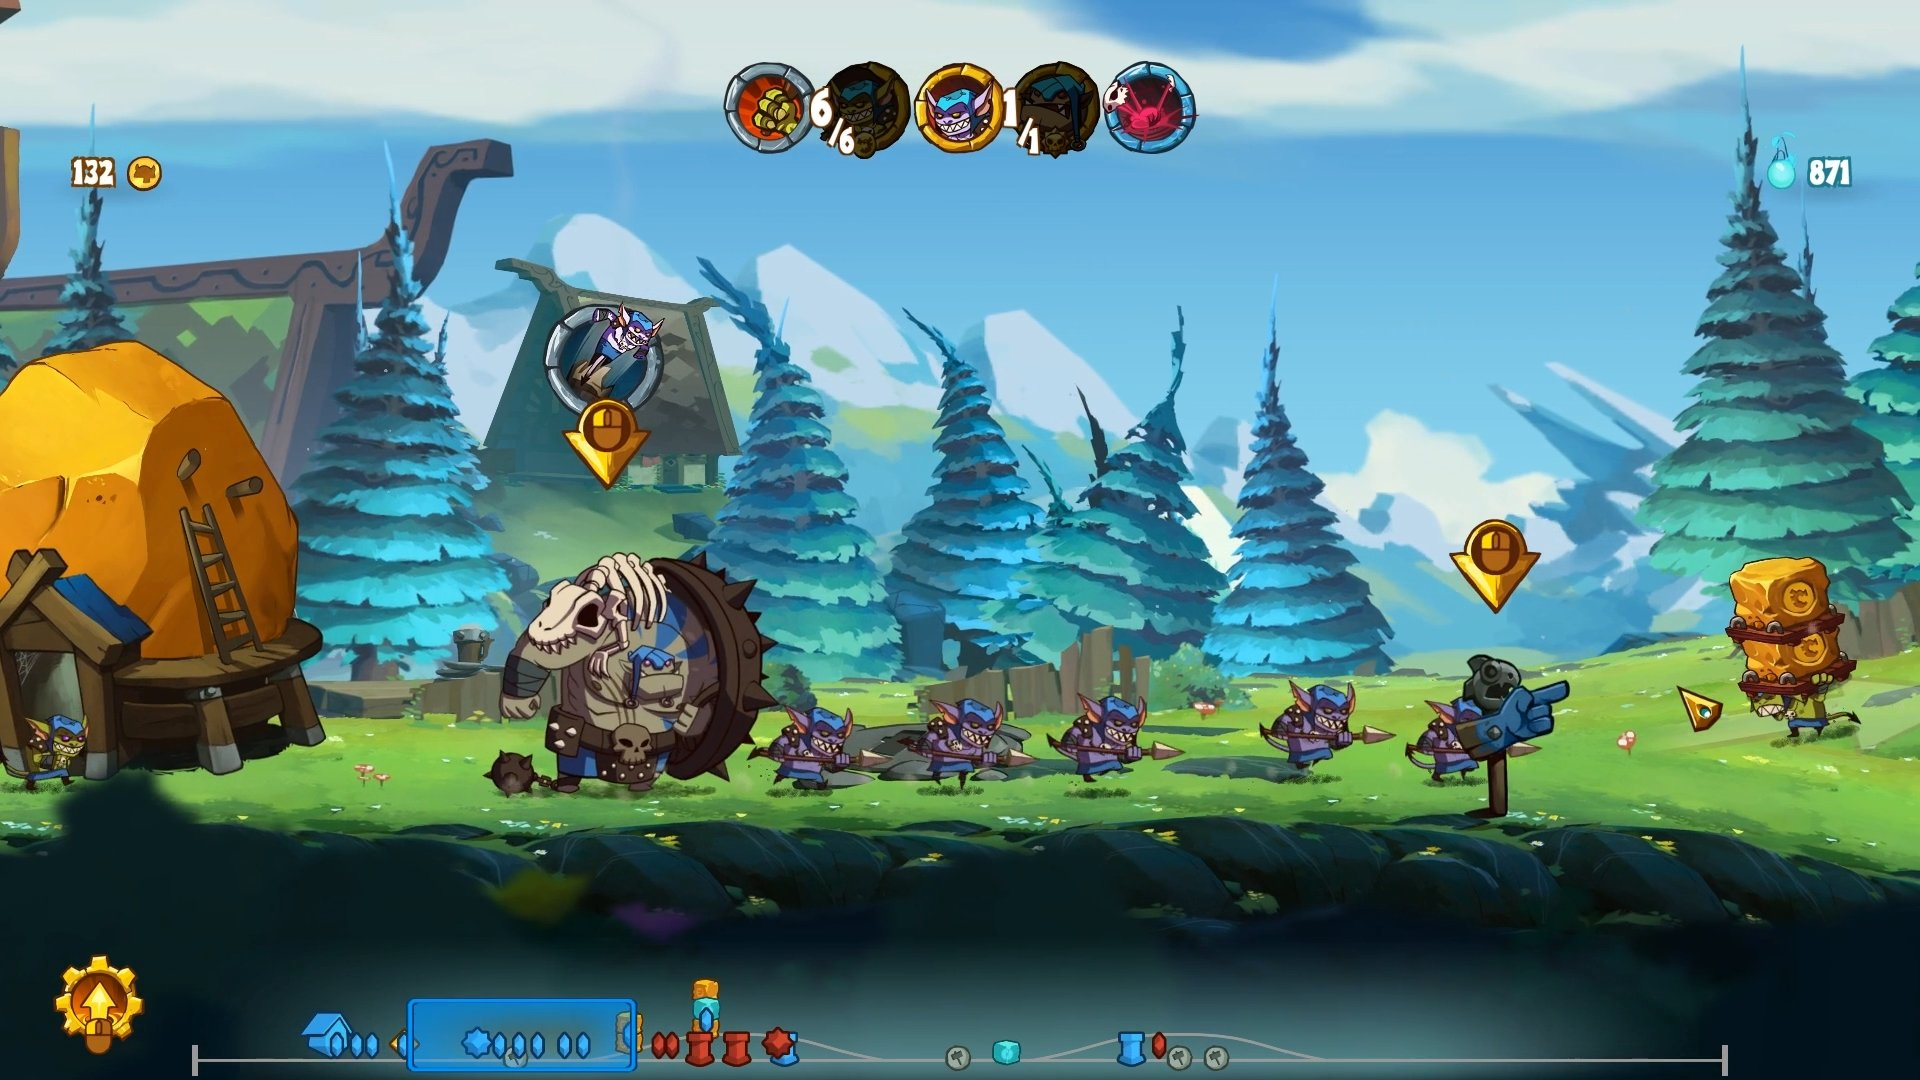 Giveaway: Take one of our 2,500 Steam keys for the Swords and Soldiers 2 multiplayer beta screenshot